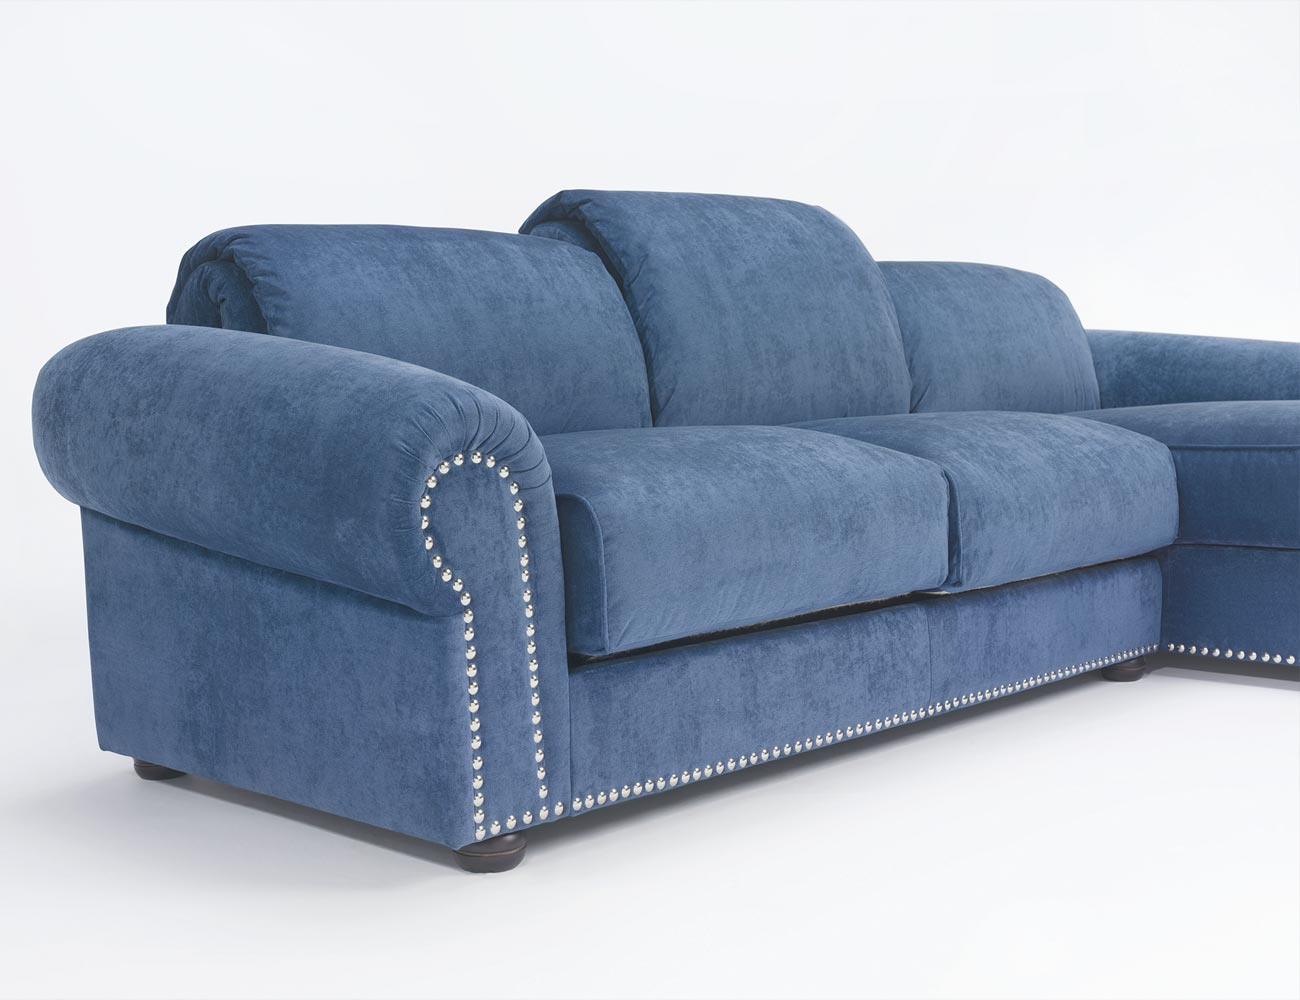 Sofa chaiselongue gran lujo decorativo azul 16